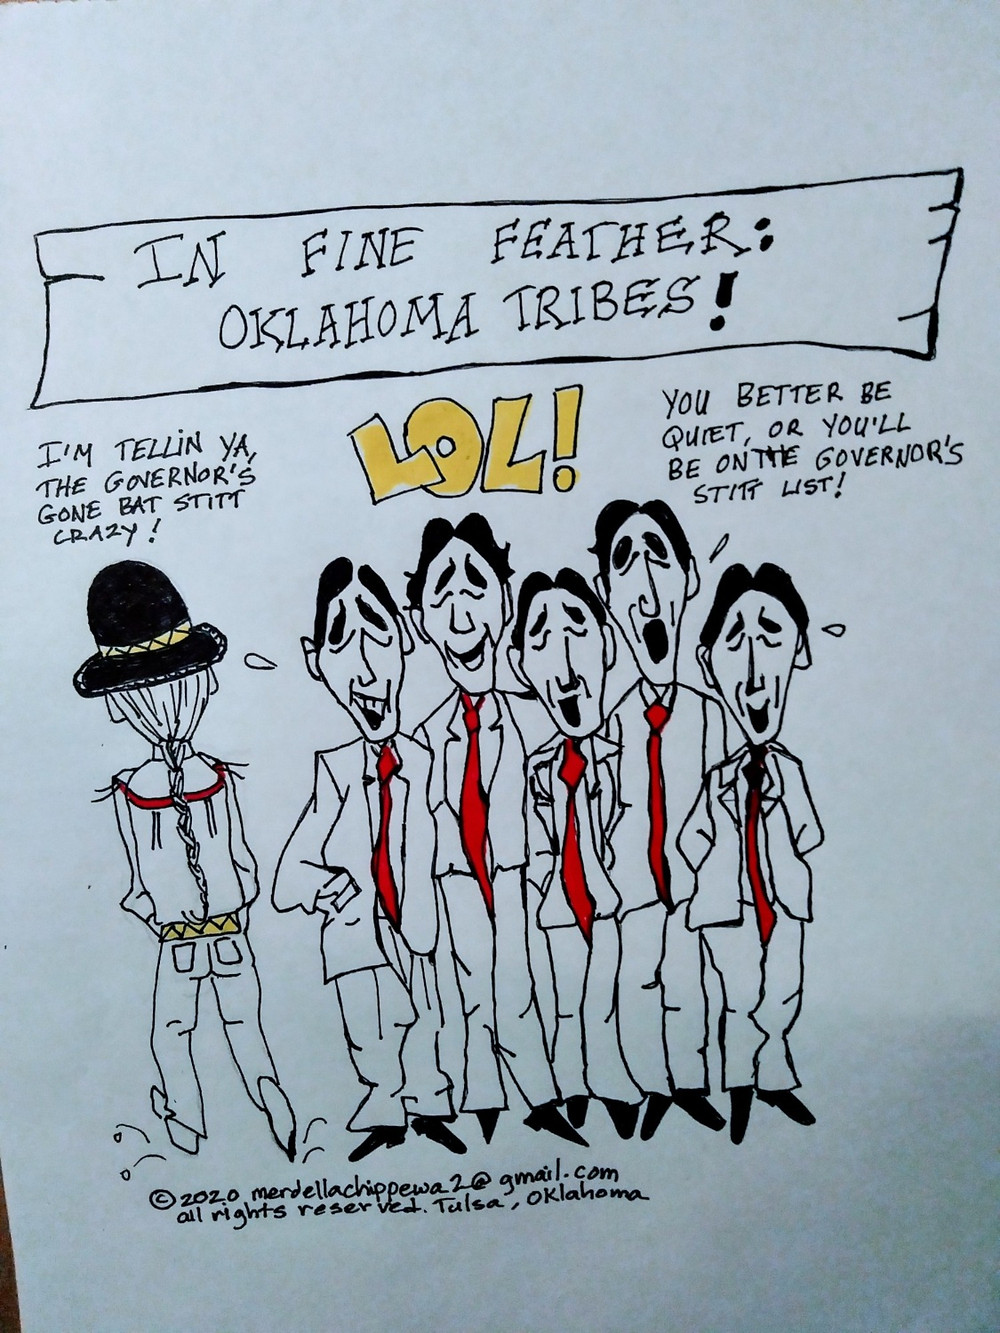 The picture pokes fun at the current Oklahoma Governor for emphasizing an increase in taxes towards the Native American Tribes.